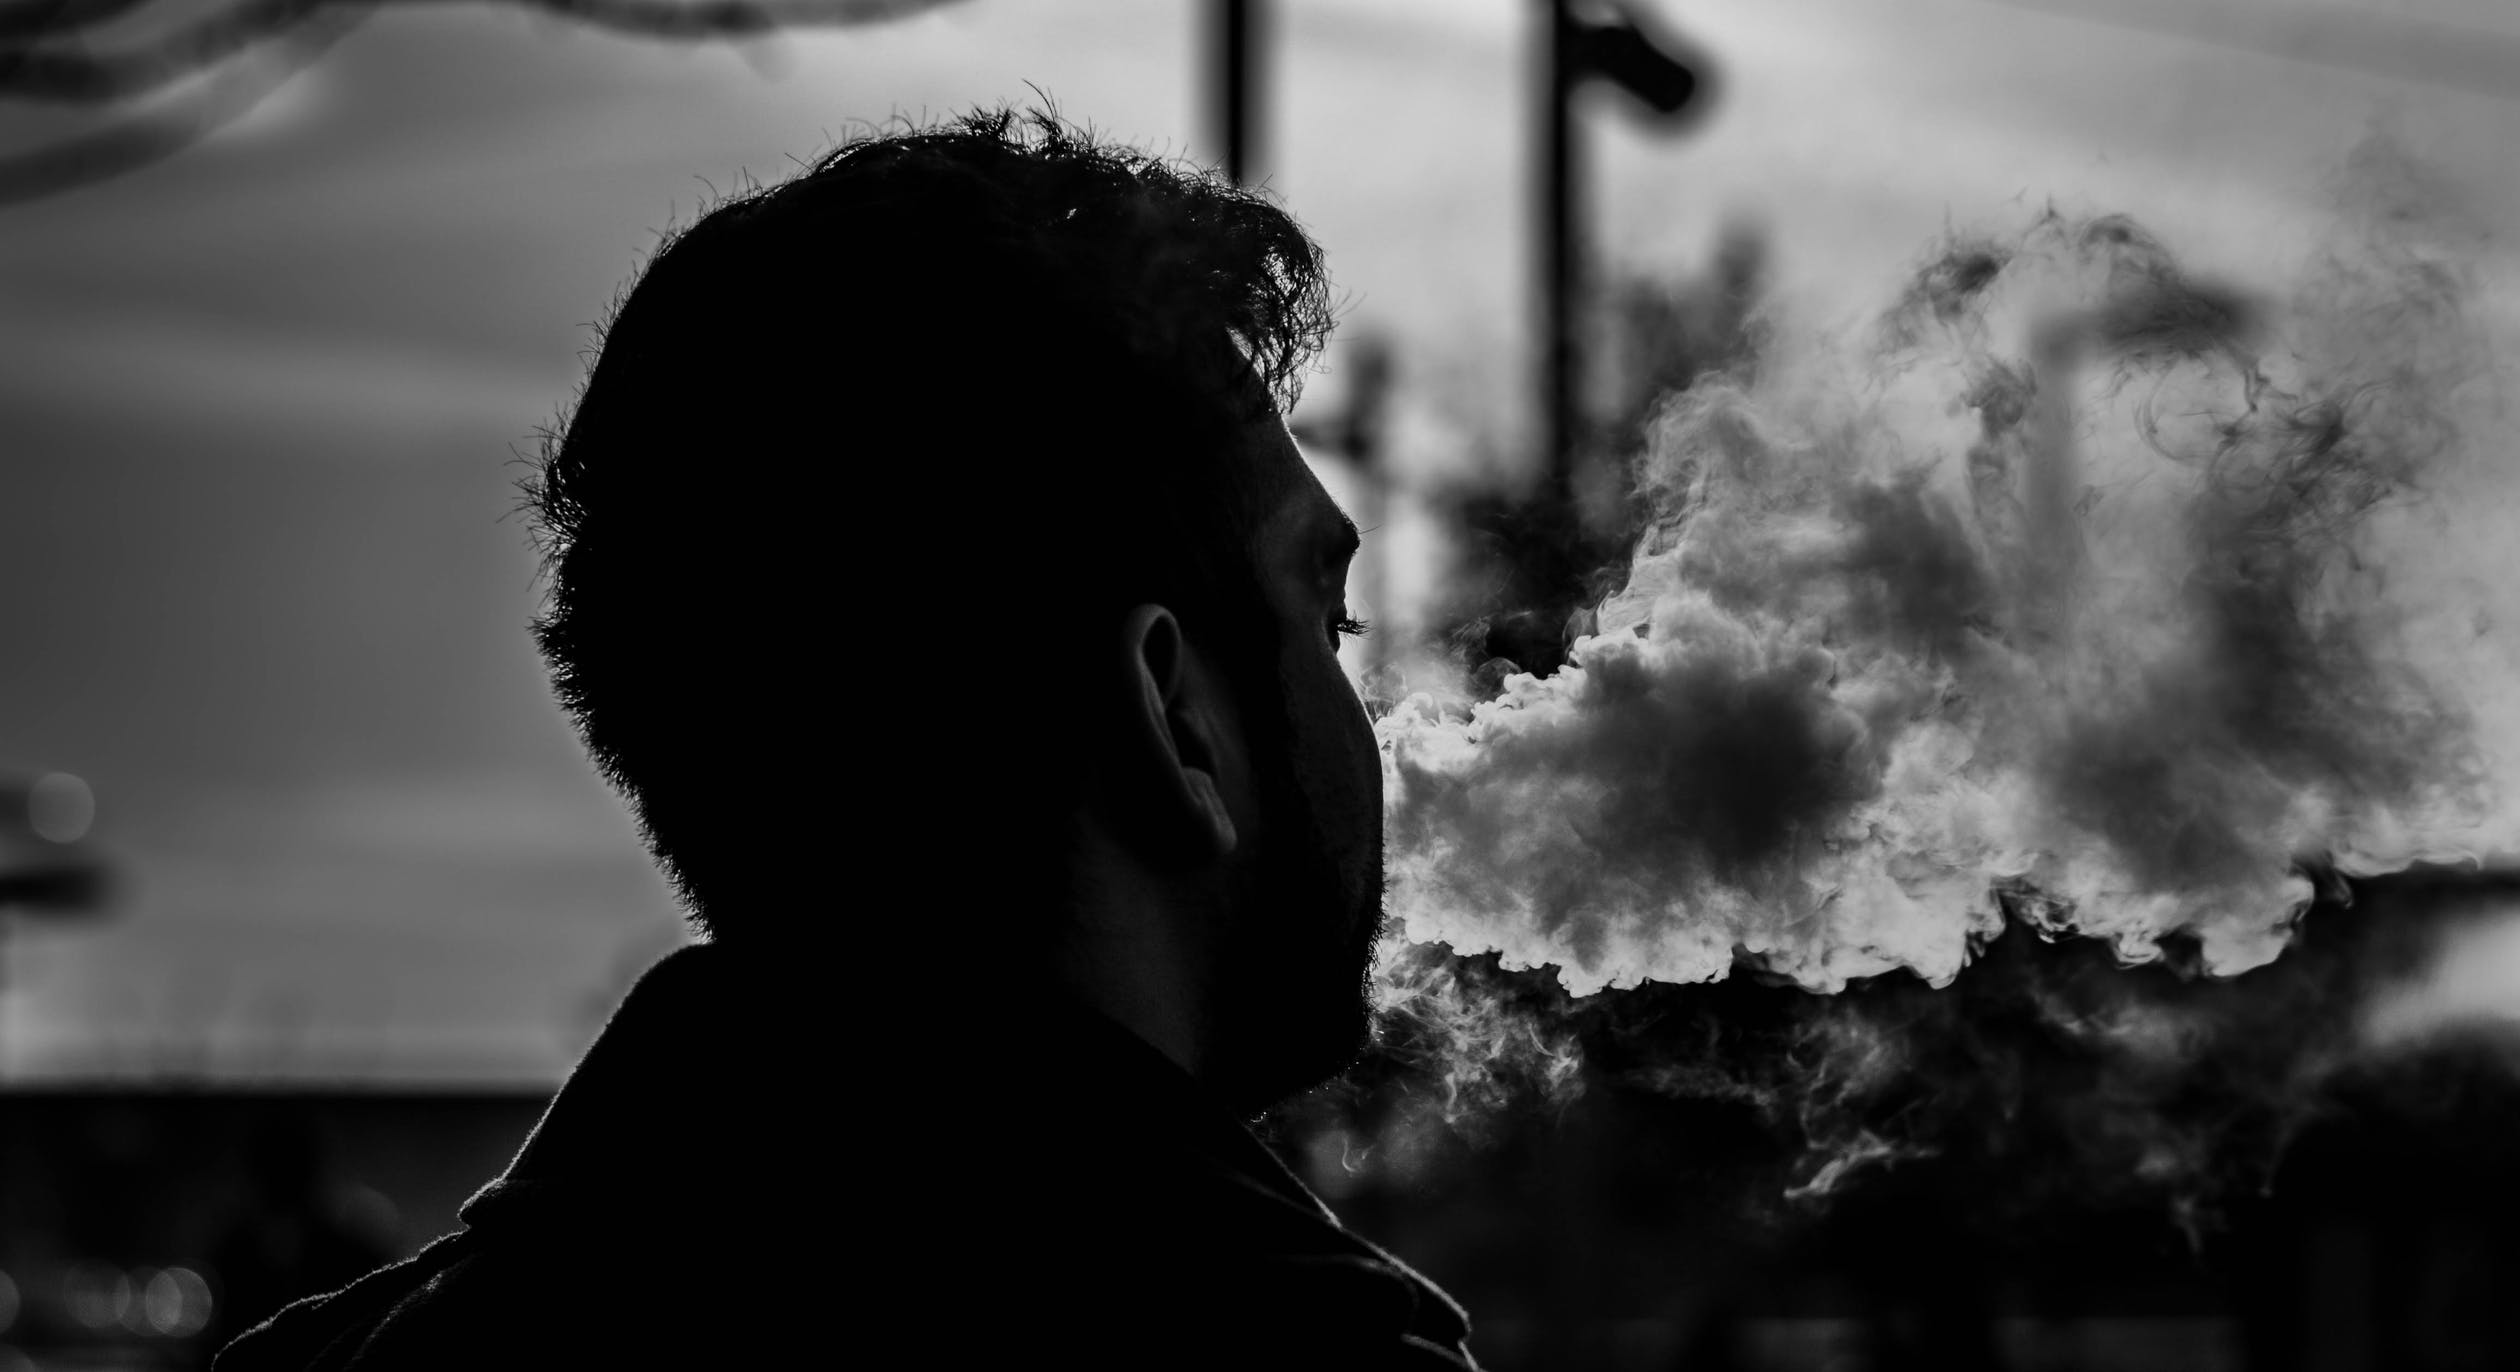 A close-up black and white photo of a young man vaping CBD.